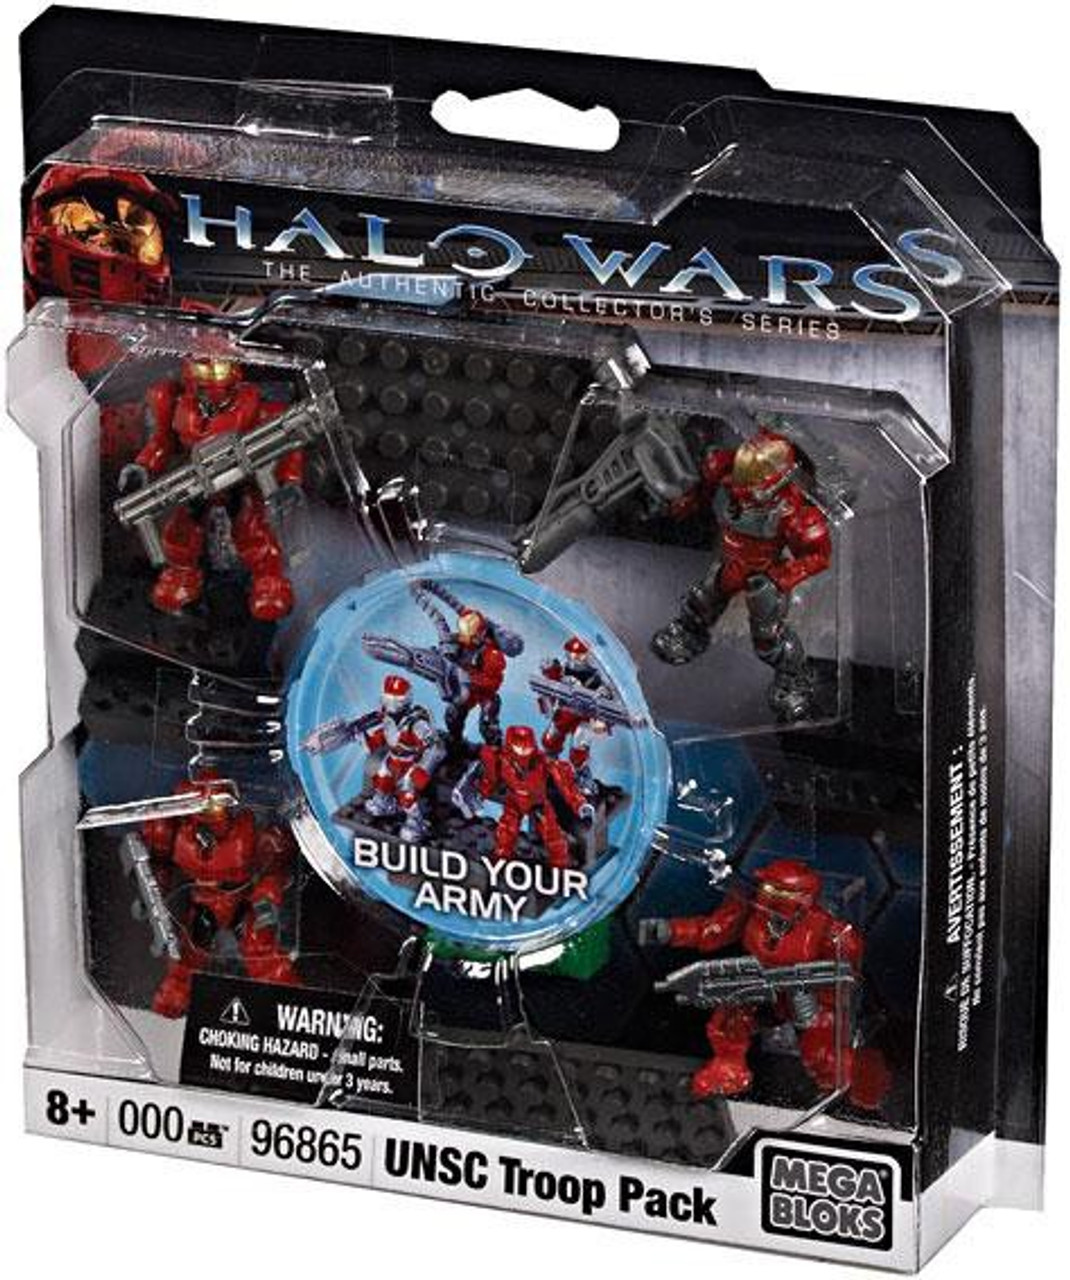 Mega Bloks Halo UNSC Troop Pack Exclusive Set #96865